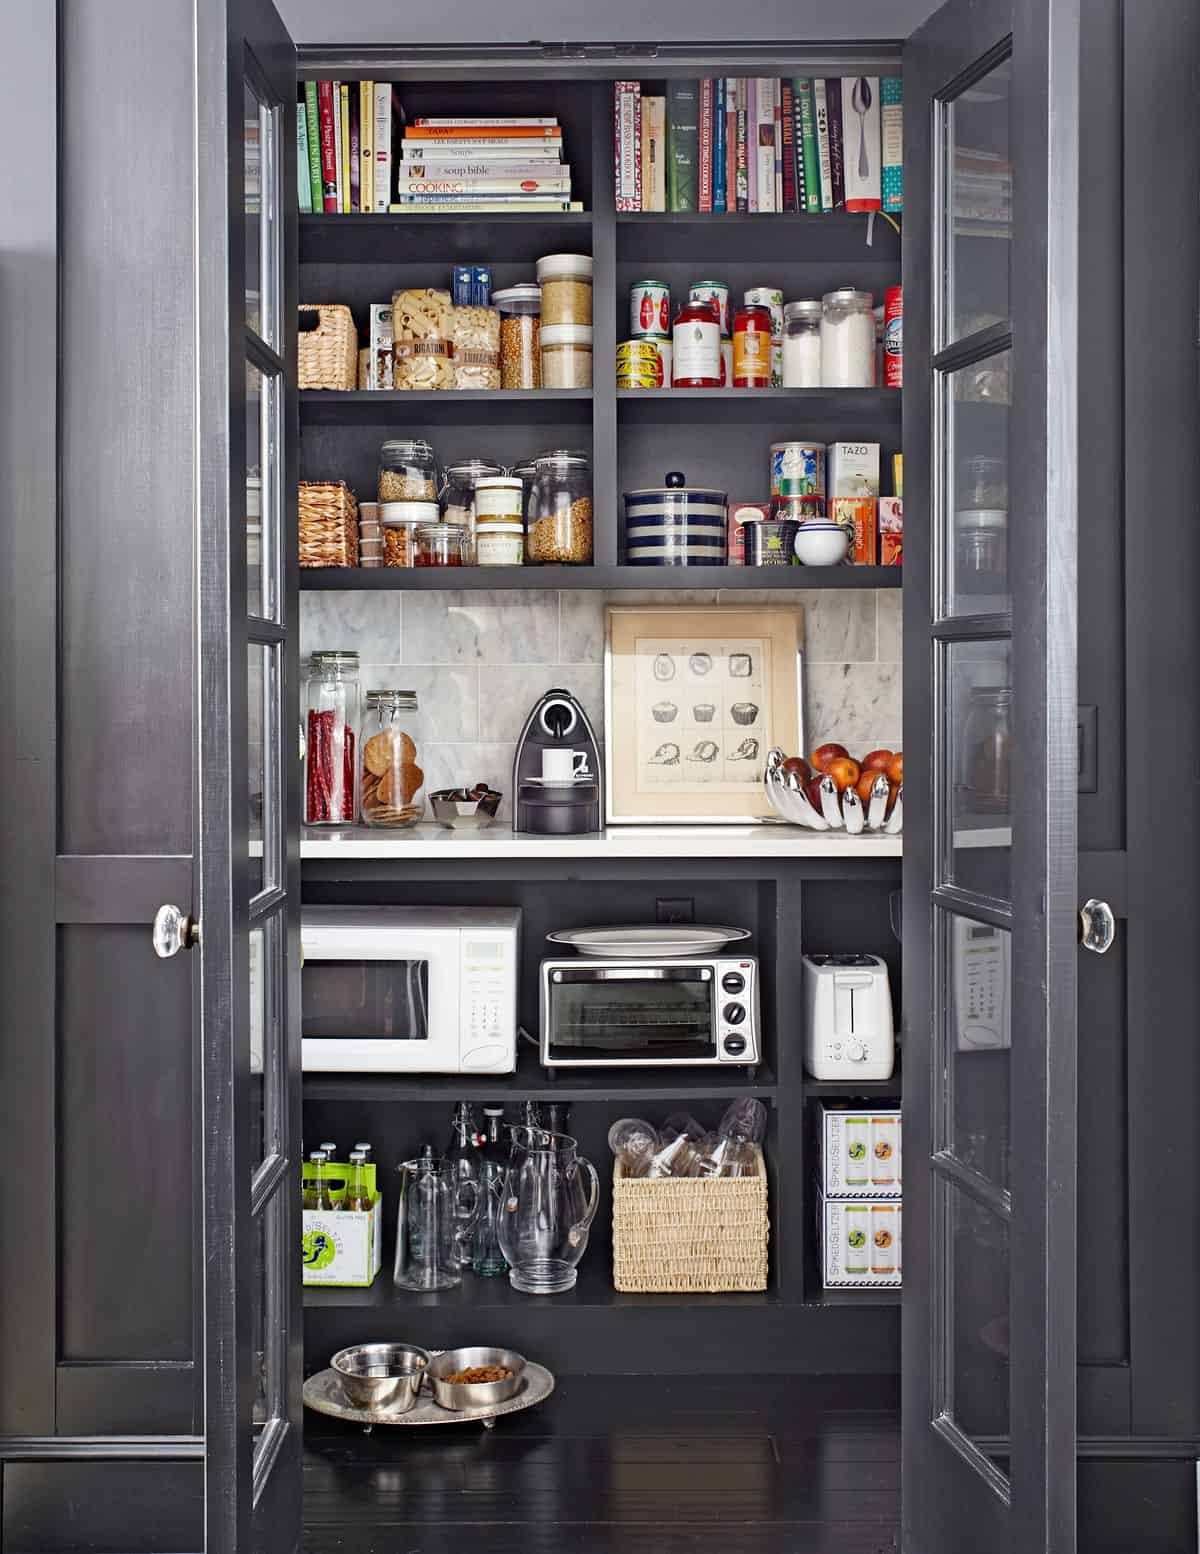 psntry french doors Invigorating Pantry Door Ideas   Smart Space Organization